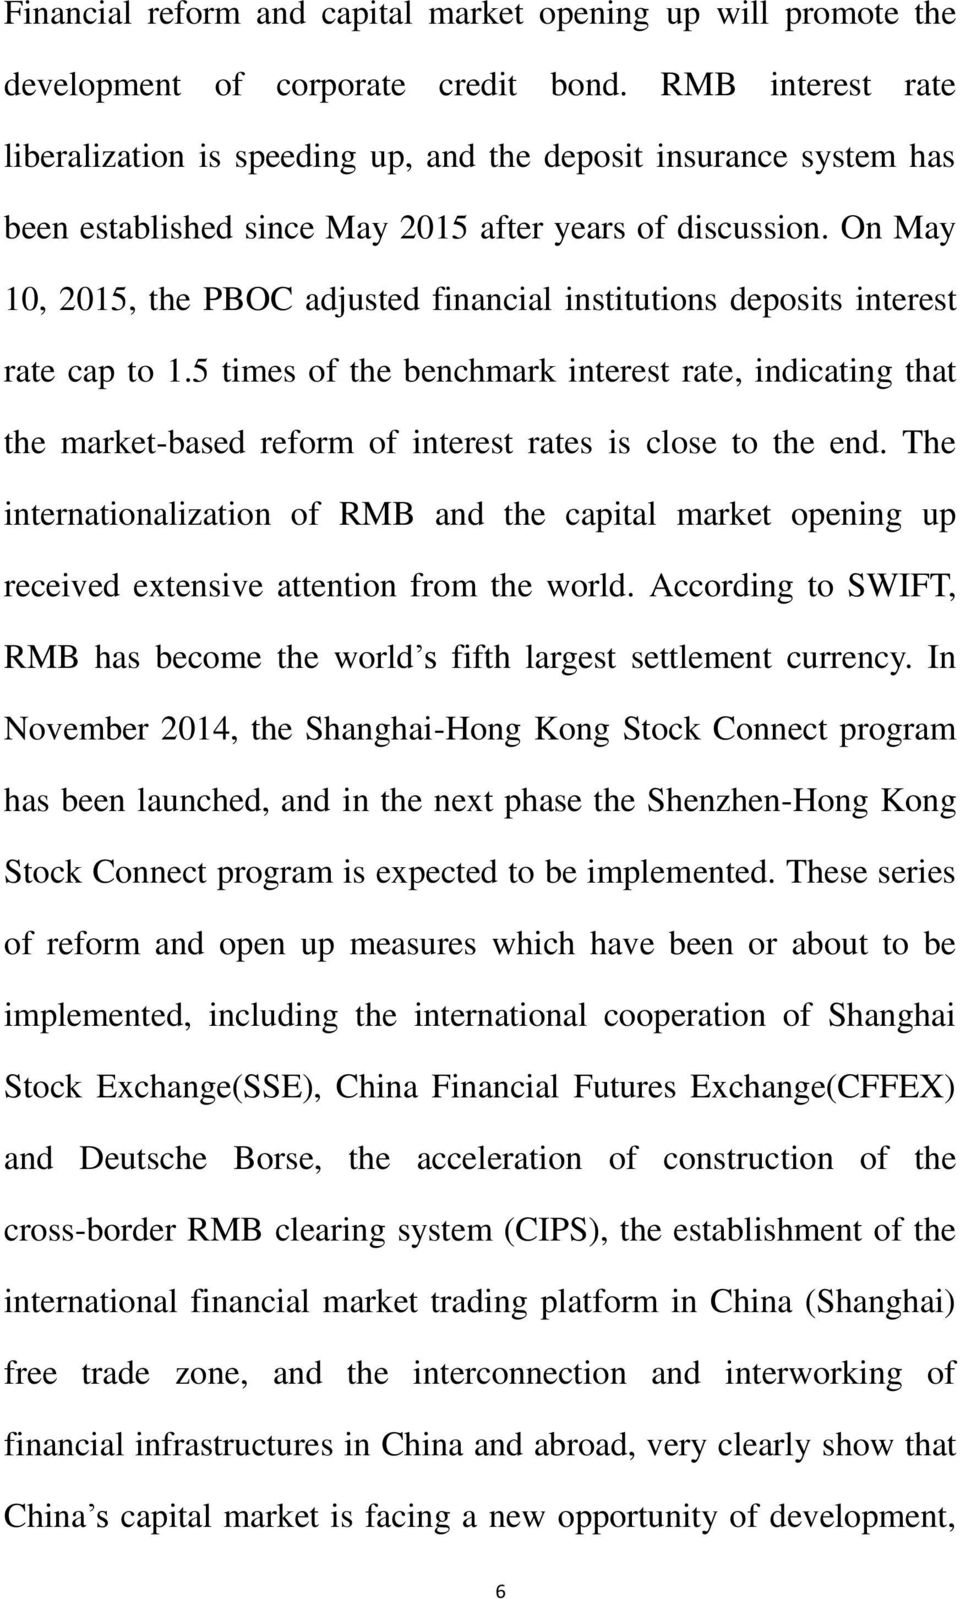 On May 10, 2015, the PBOC adjusted financial institutions deposits interest rate cap to 1.